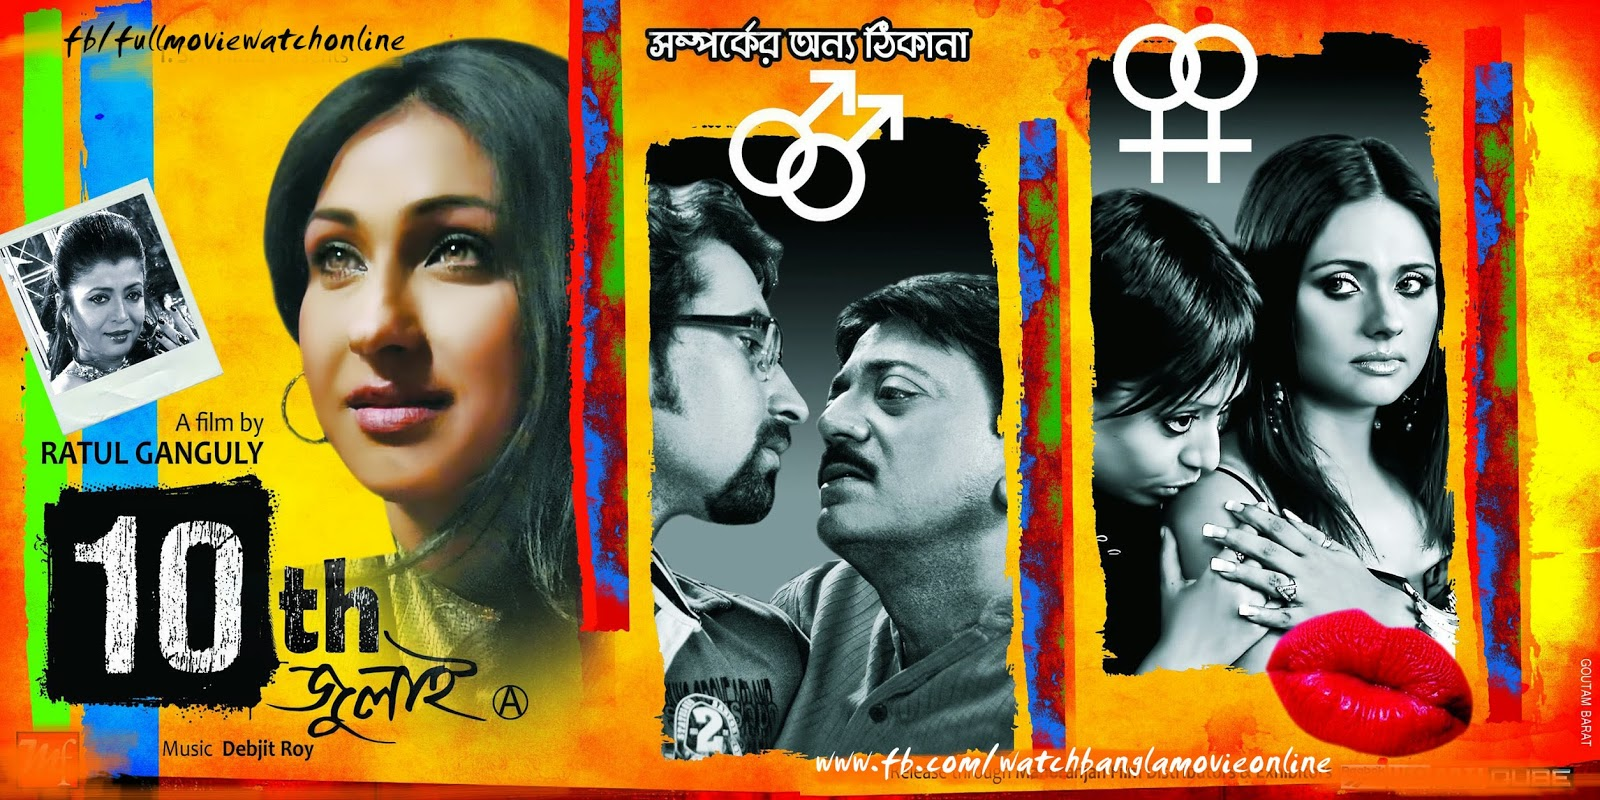 New Bangla Moviee 2016 click hear.............. 10th+July+18%252B+Sexy+Lesbian+Gay+Poof+Bengali+Movie+Online+2014+Bangla+Tollywood+Full+Movie+Poster+Calcutta+Indian+Film